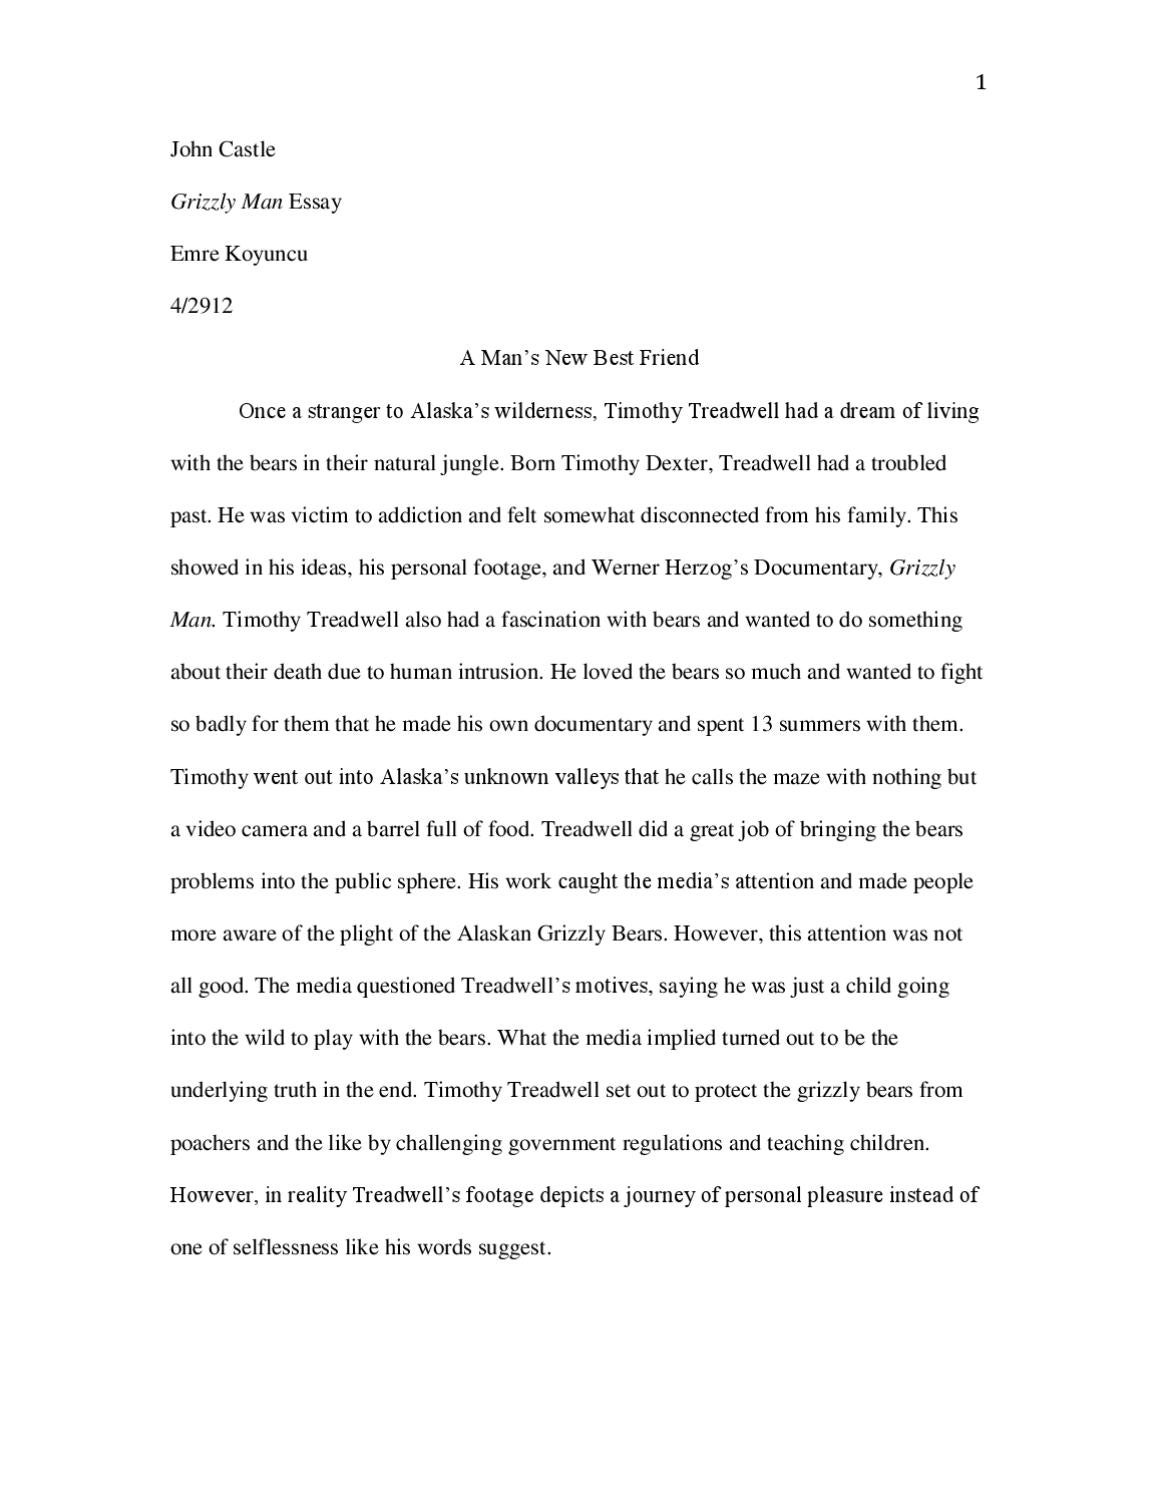 revised grizzly man essay by john castle issuu